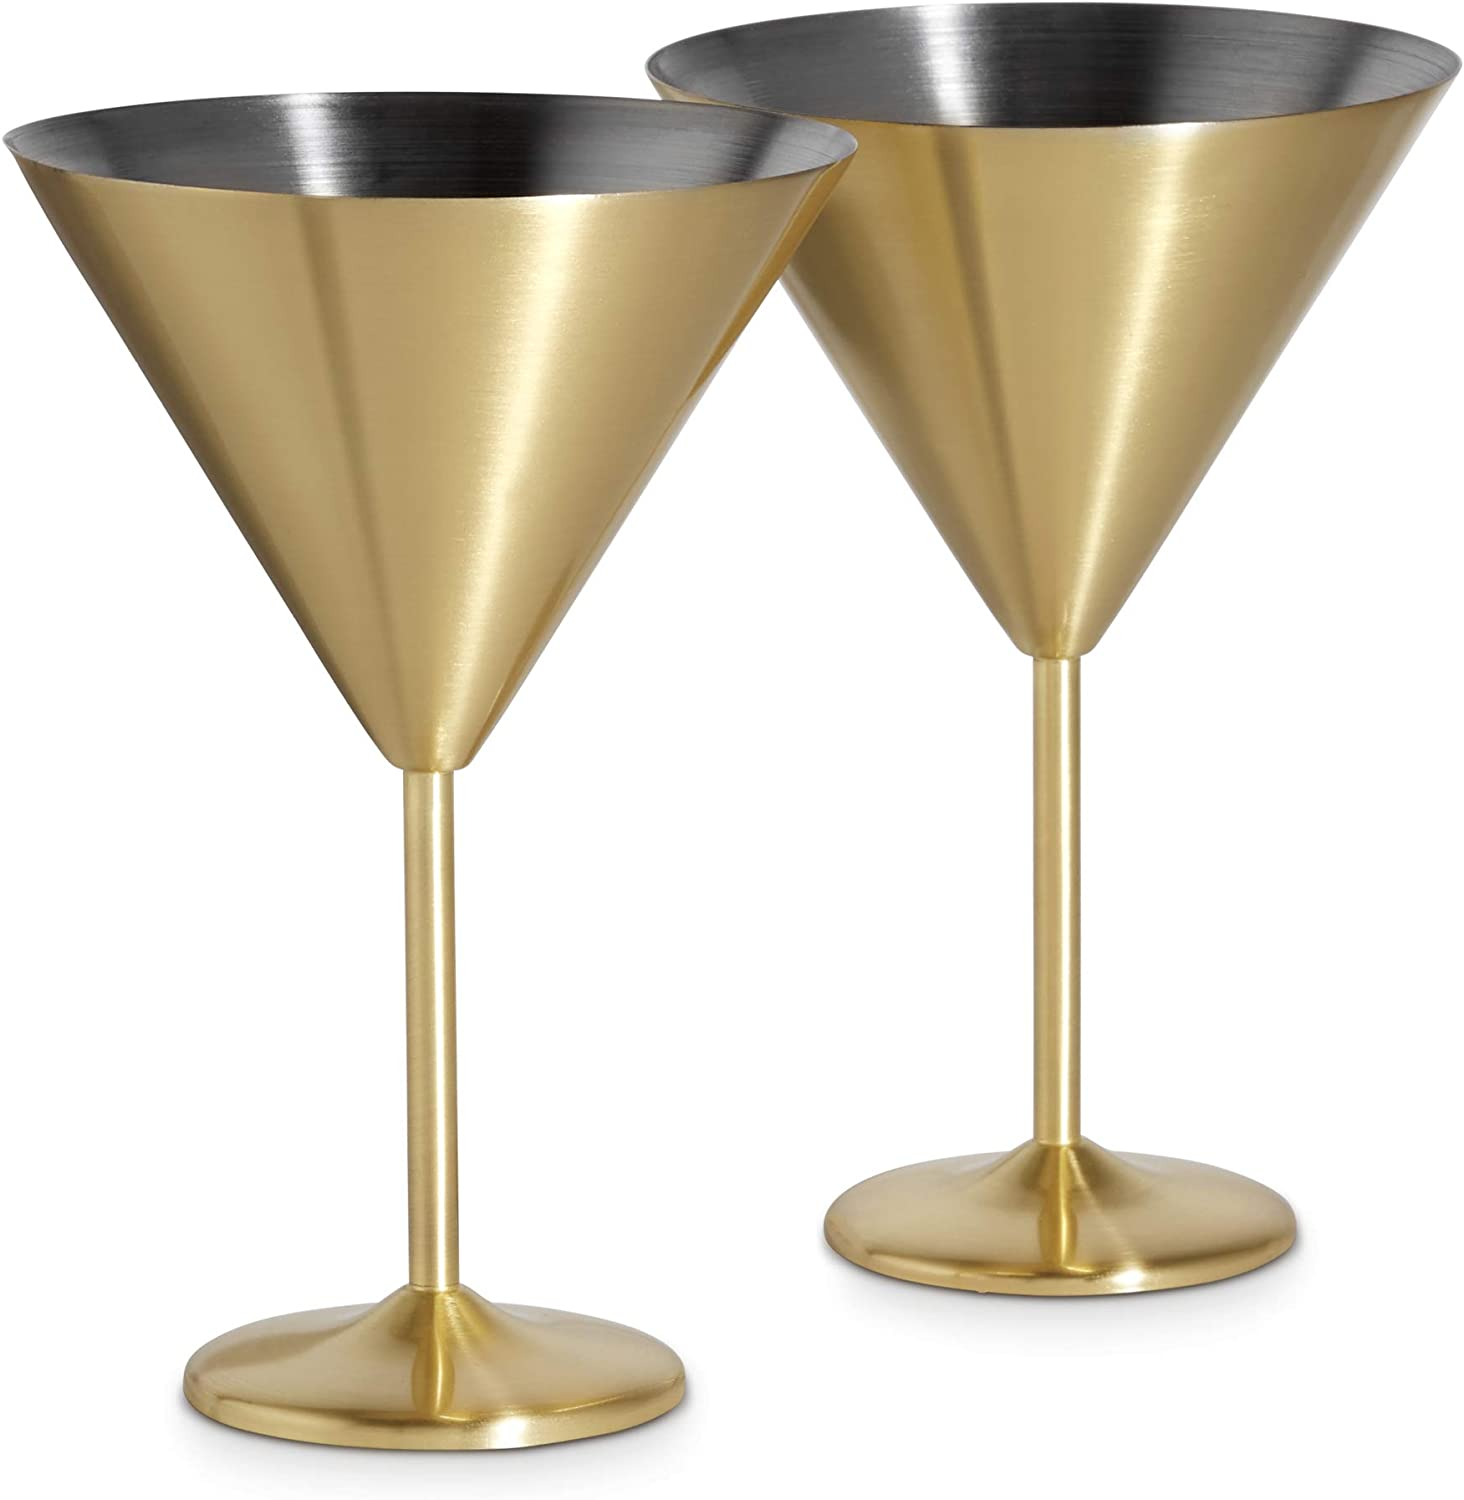 Amazon Com Vonshef 16oz Gold Martini Cocktail Glasses Brushed Gold Stainless Steel Set Of 2 With Gift Box Martini Glasses